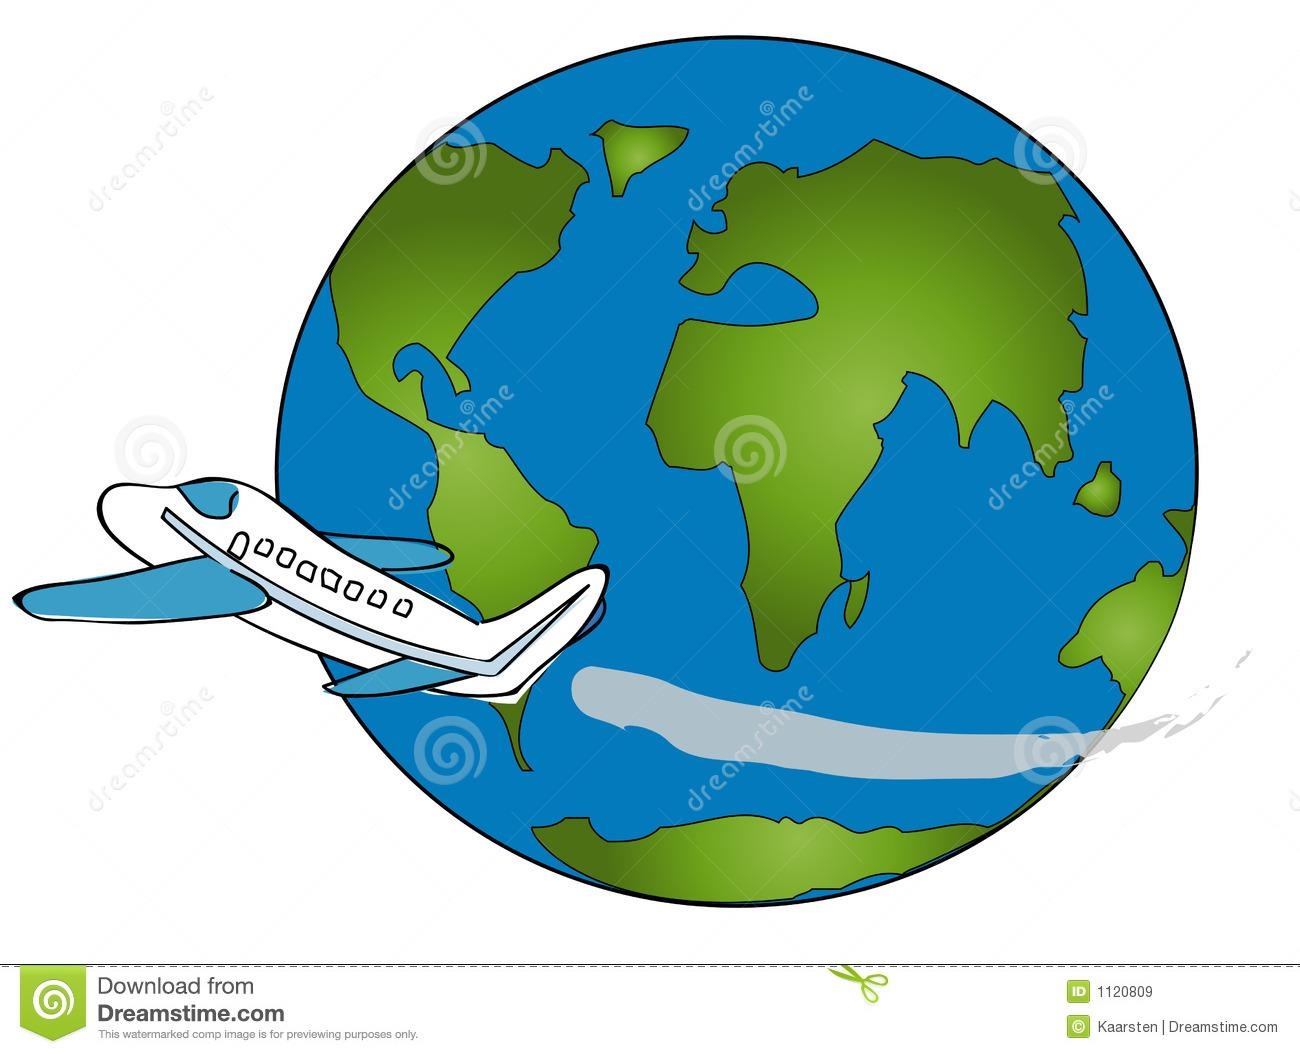 Travel clipart world travel Clipart Clipart Free Images Panda